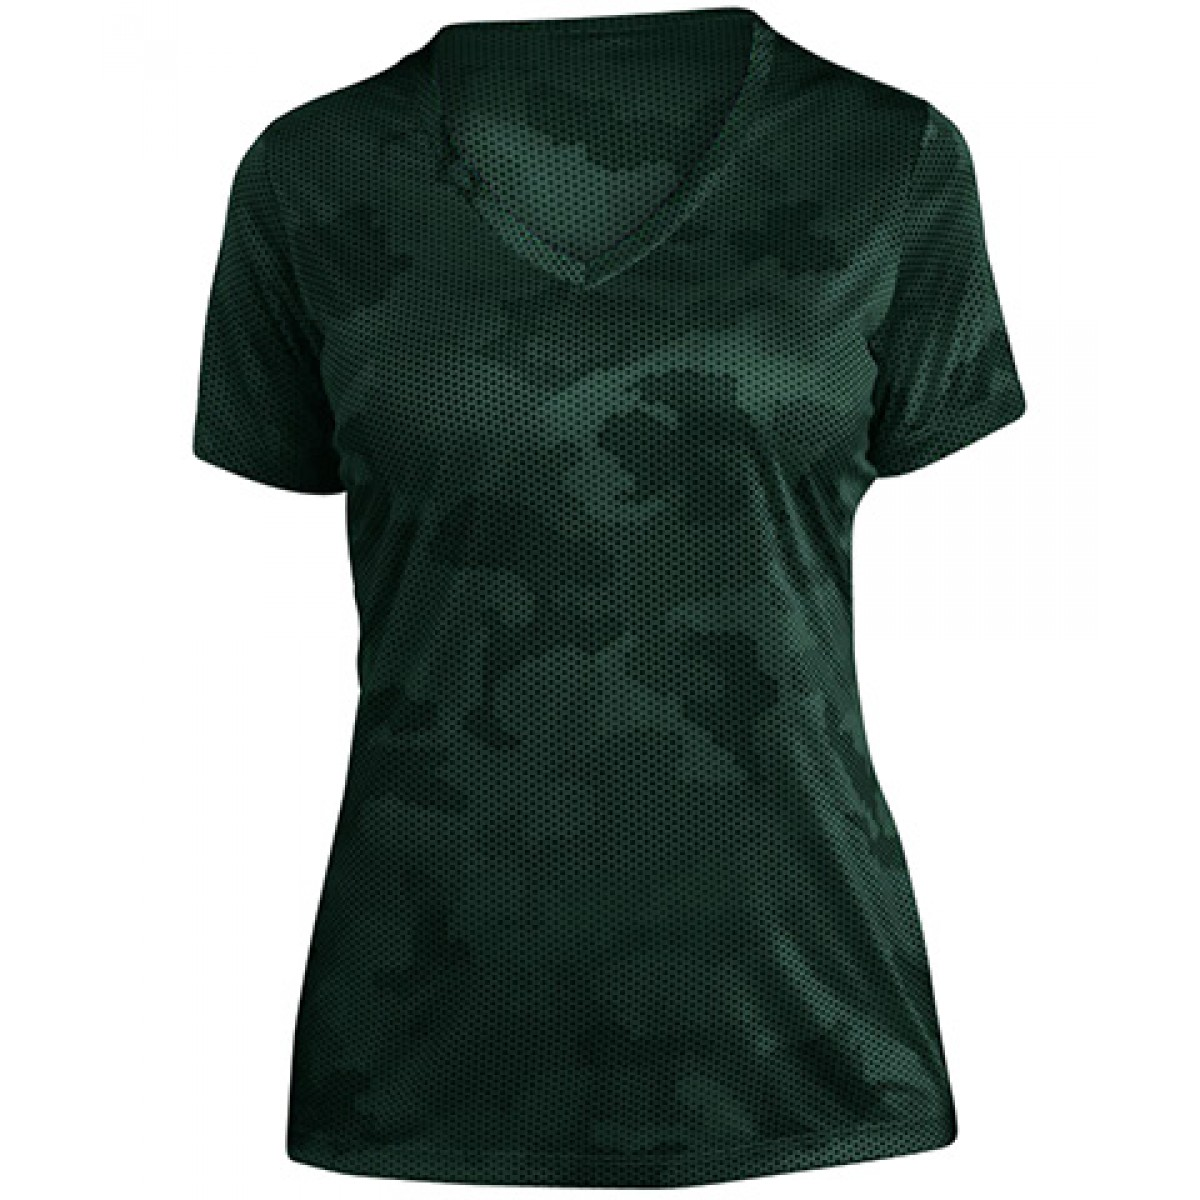 Ladies CamoHex V-Neck Tee-Green-M